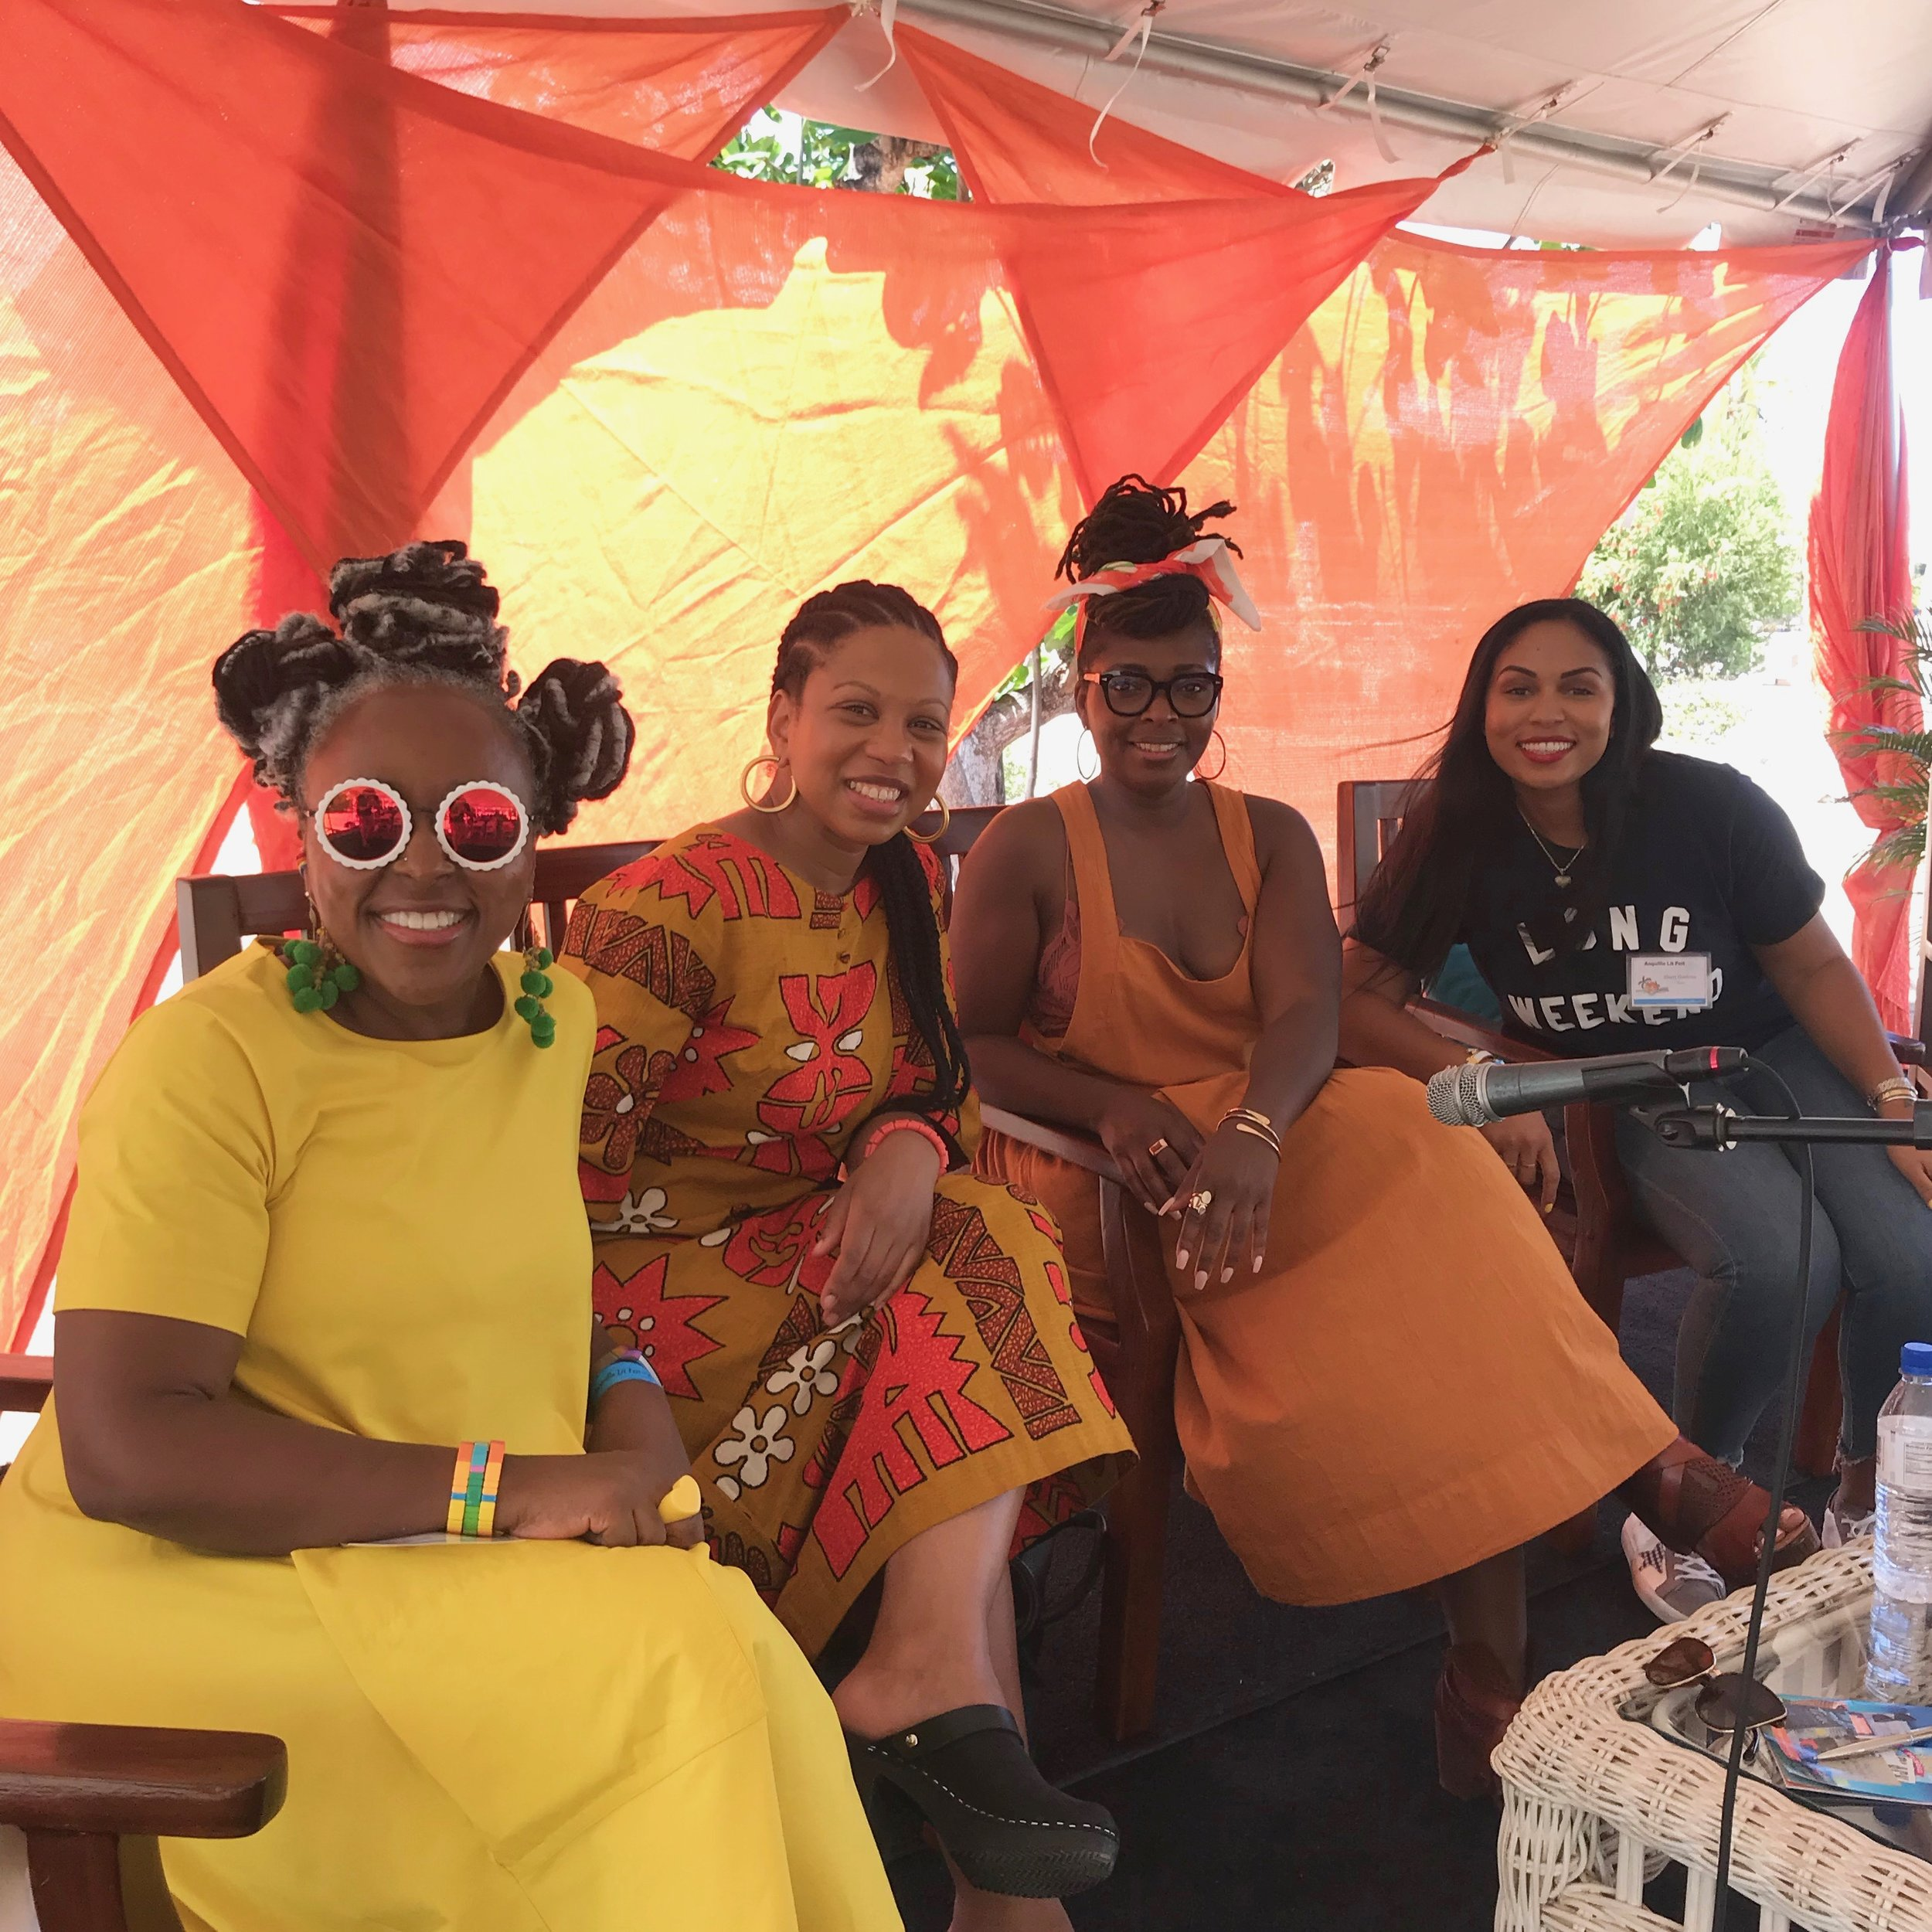 Bloggers, Book Clubs and Branding panelists (L-R) Glory Edim, Denene Millner and Sheri Gaskins